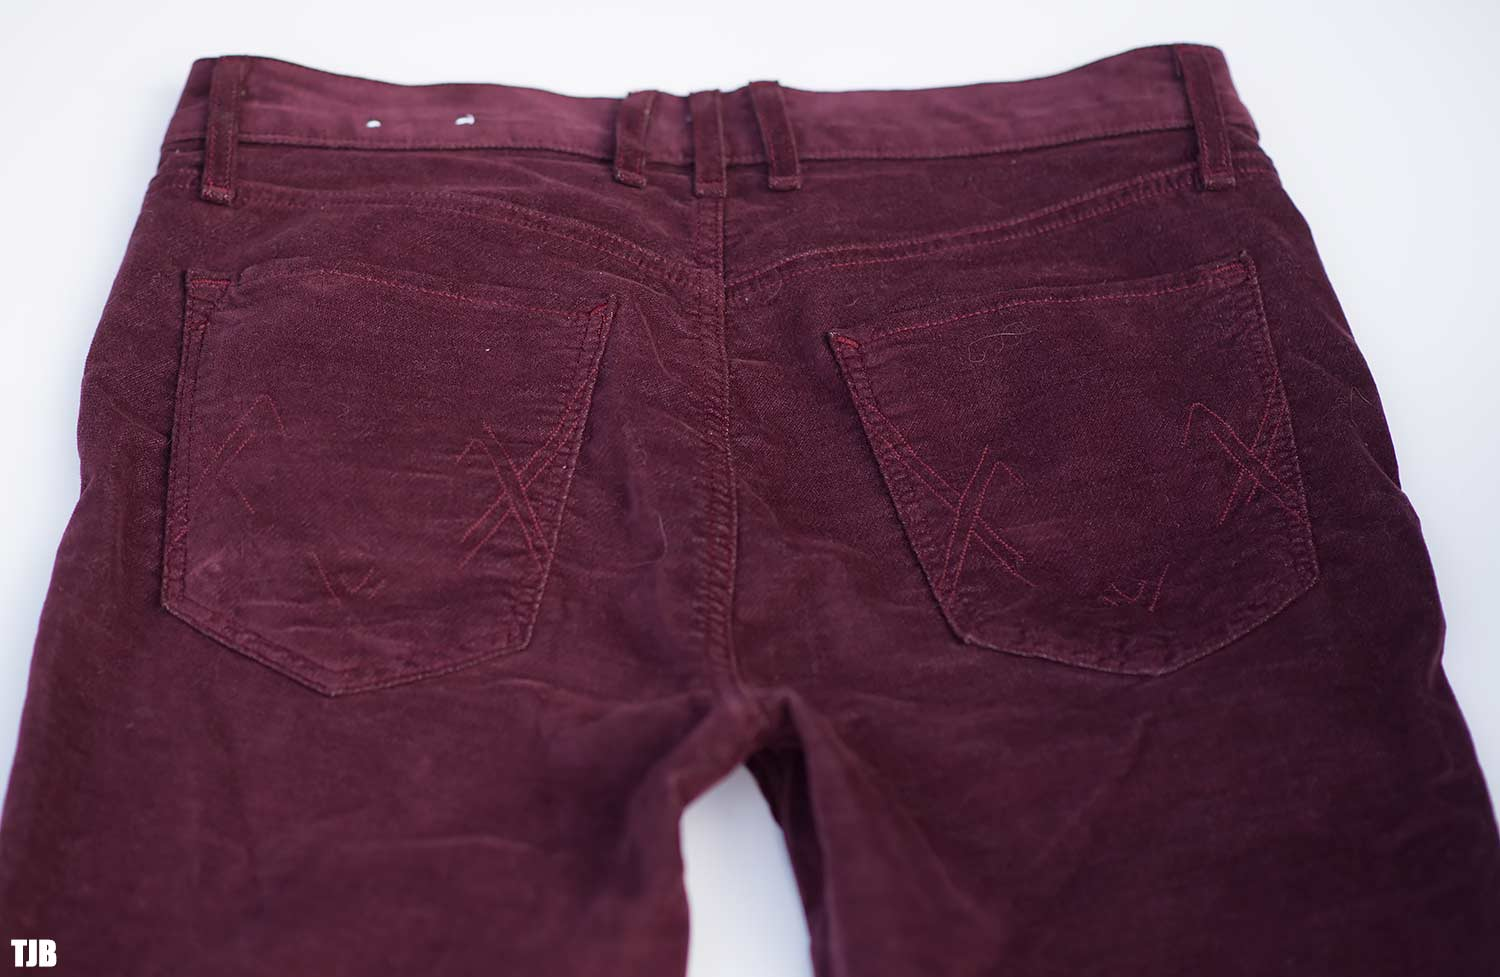 mcguire-denim-newton-exposed-button-skinny-pants-in-pinot-review-3